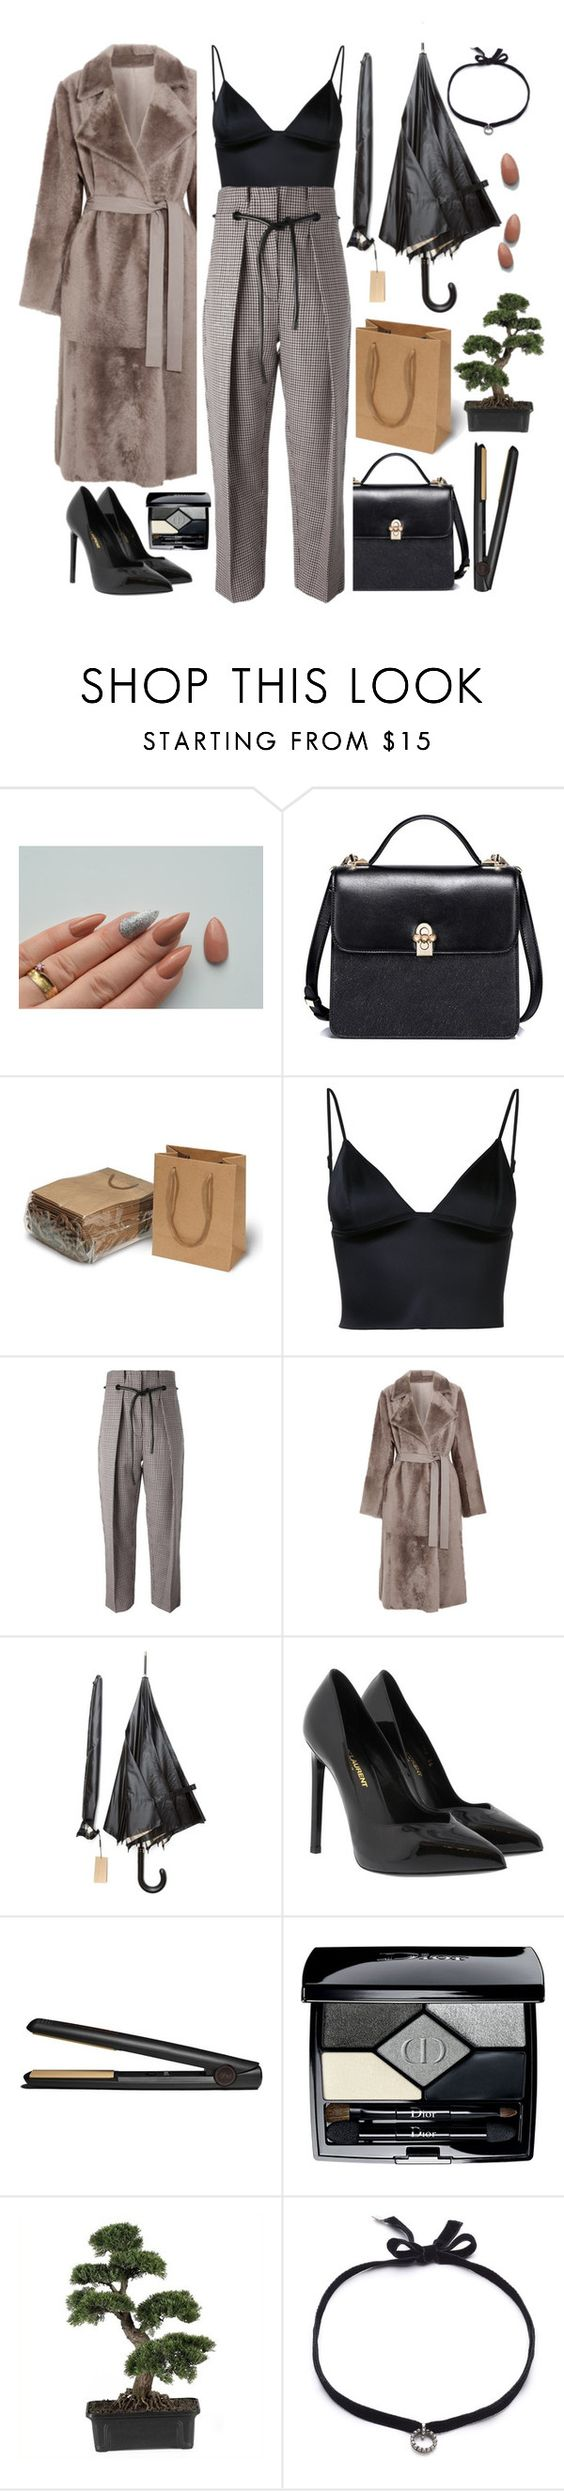 """""""Words do not define us"""" by missdee-93 on Polyvore featuring T By Alexander Wang, 3.1 Phillip Lim, Yves Salomon, Burberry, Yves Saint Laurent, GHD, Christian Dior, Nearly Natural and DANNIJO"""